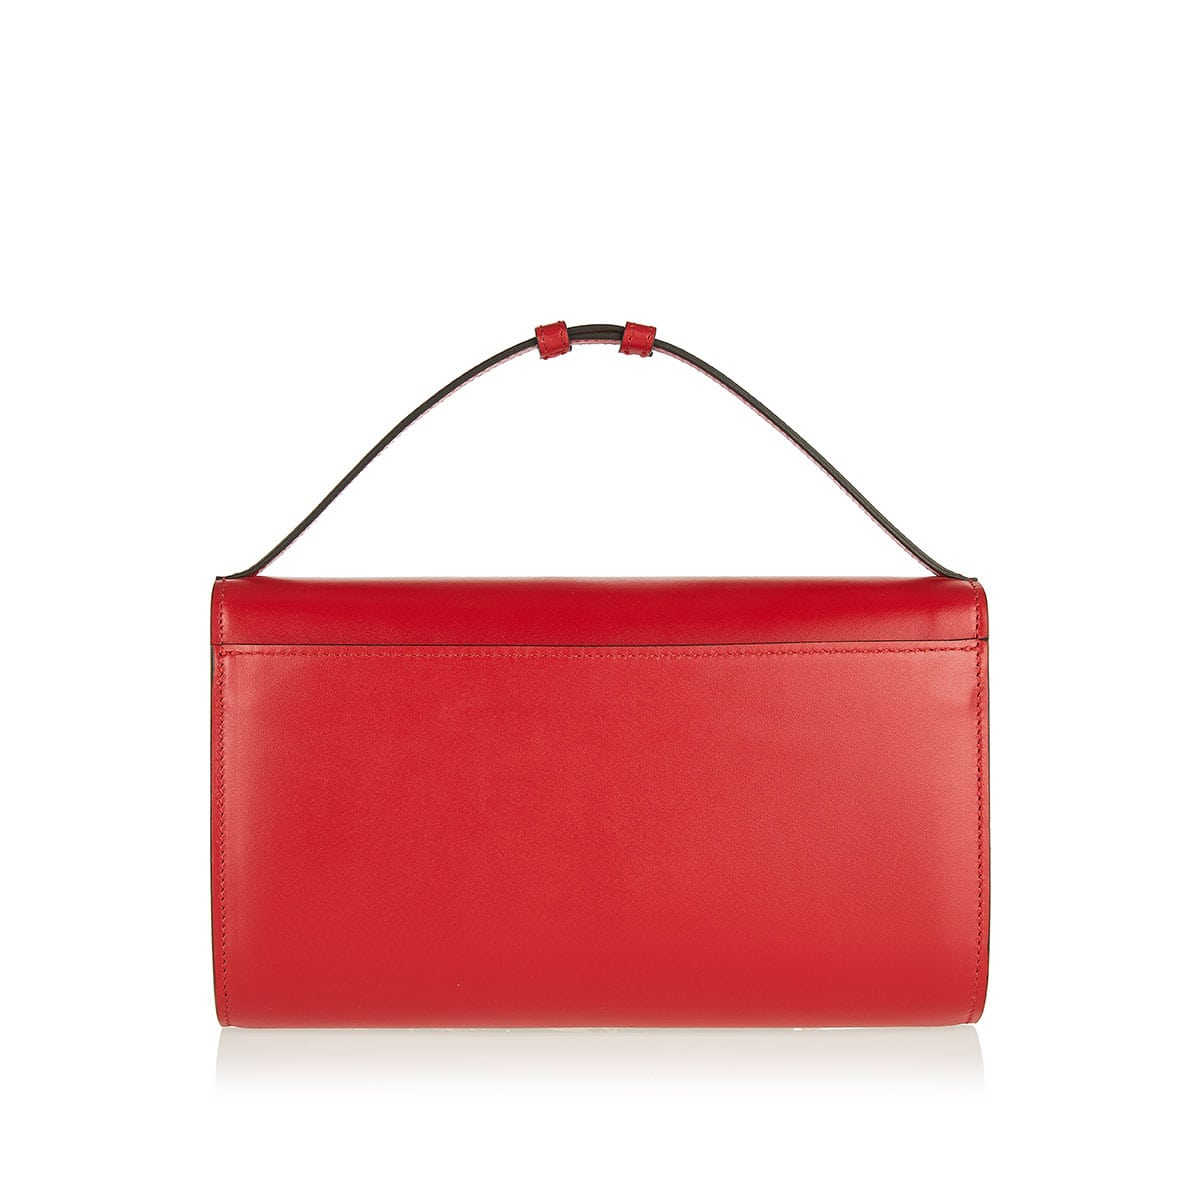 Zumi small leather shoulder bag